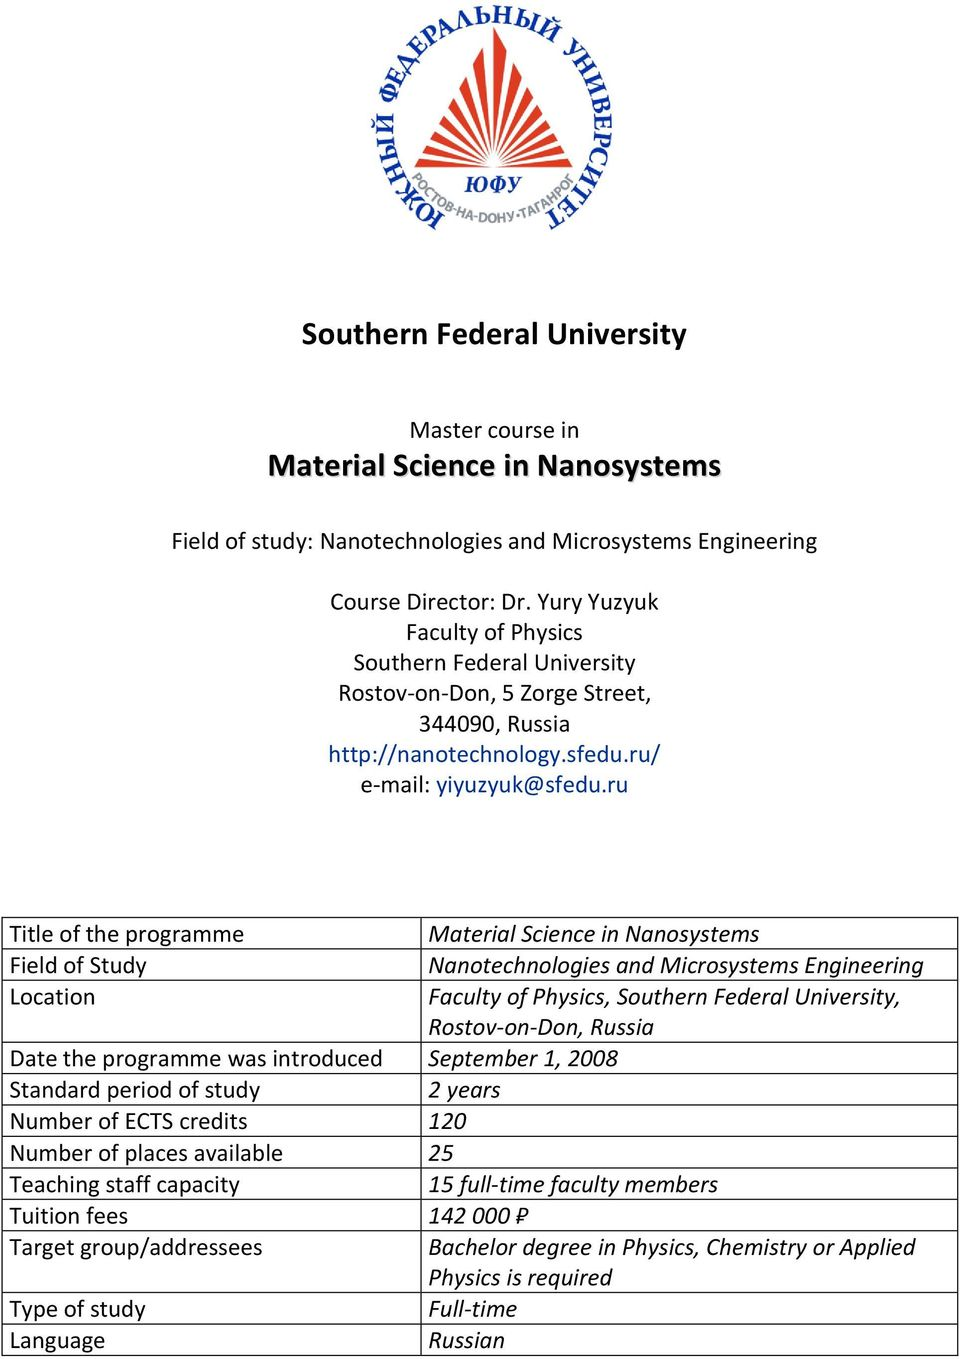 ru Title of the programme Material Science in Nanosystems Field of Study Nanotechnologies and Microsystems Engineering Location Faculty of Physics, Southern Federal University, Rostov-on-Don, Russia